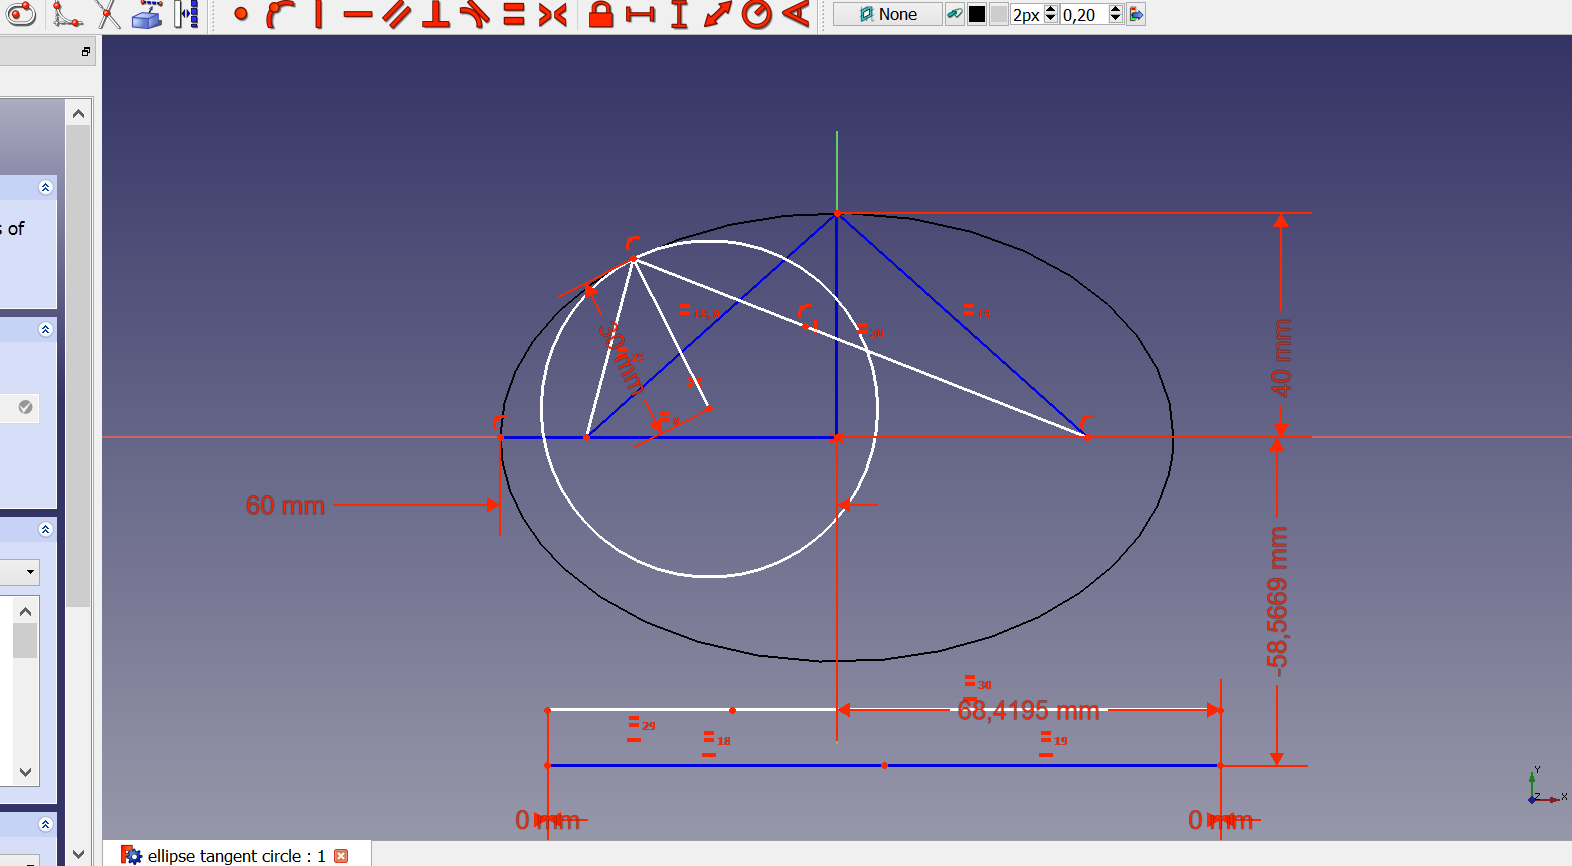 ellipse tangent circle.png